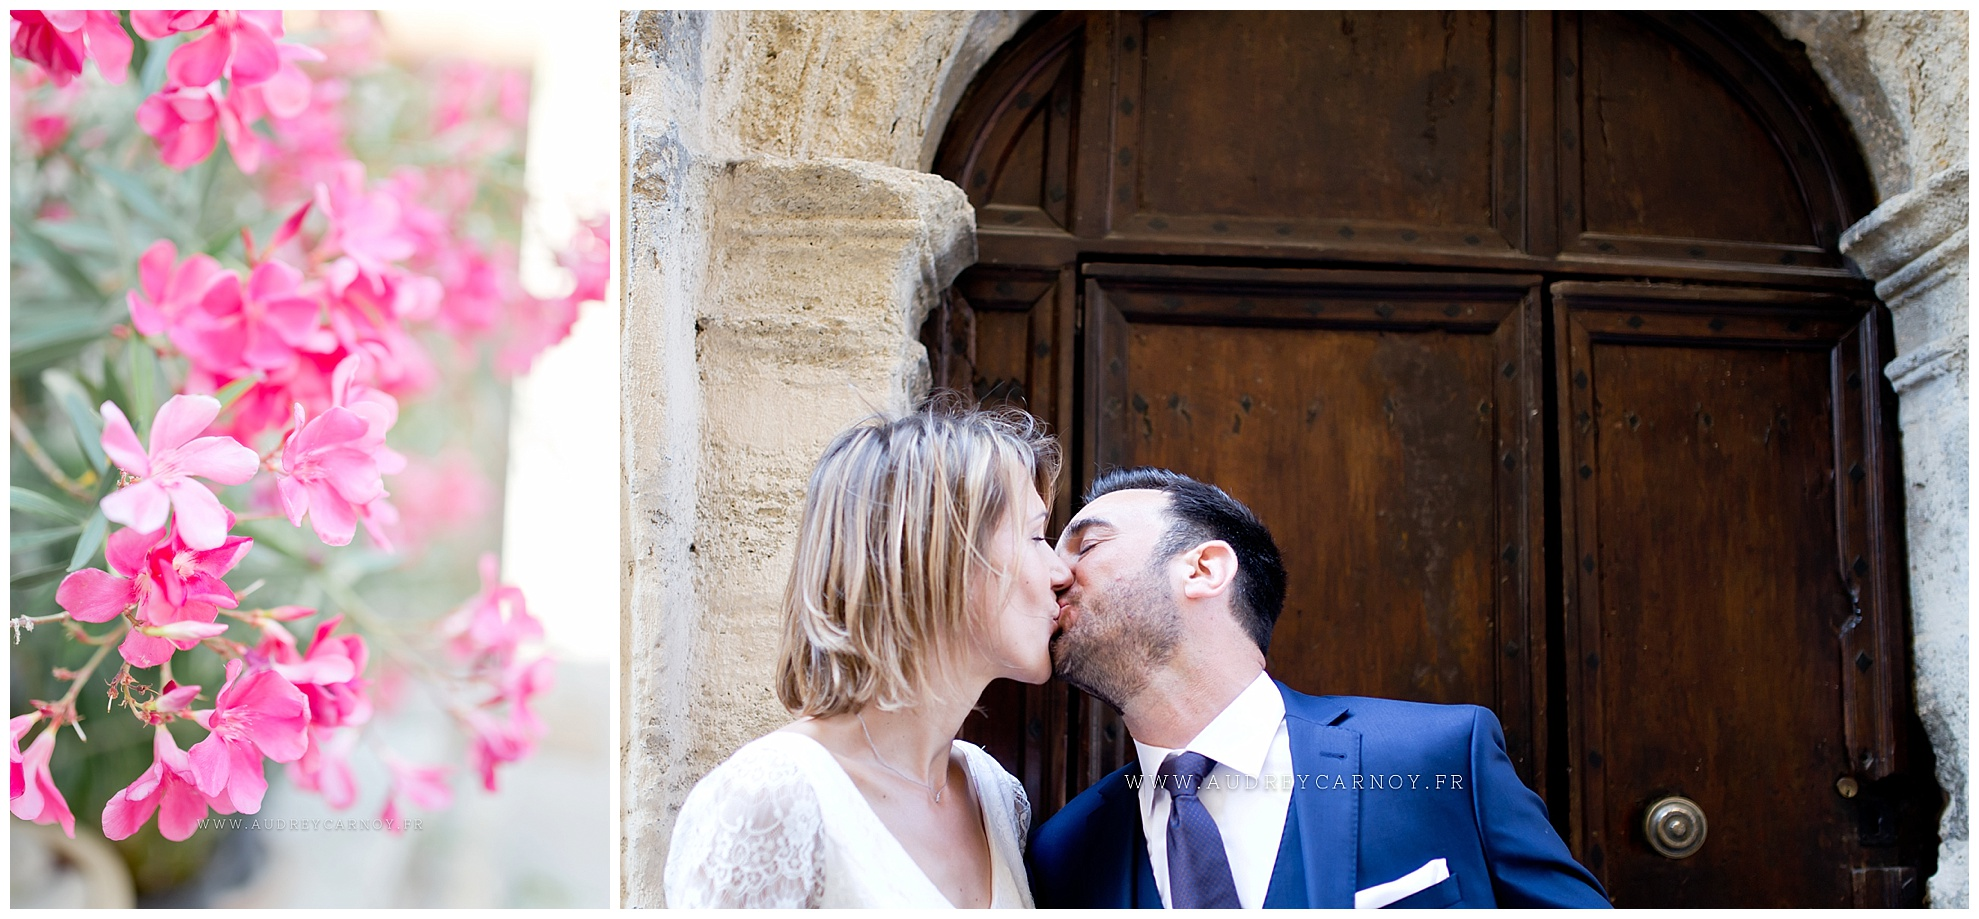 Mariage Pertuis | Laurence & Anthony 15